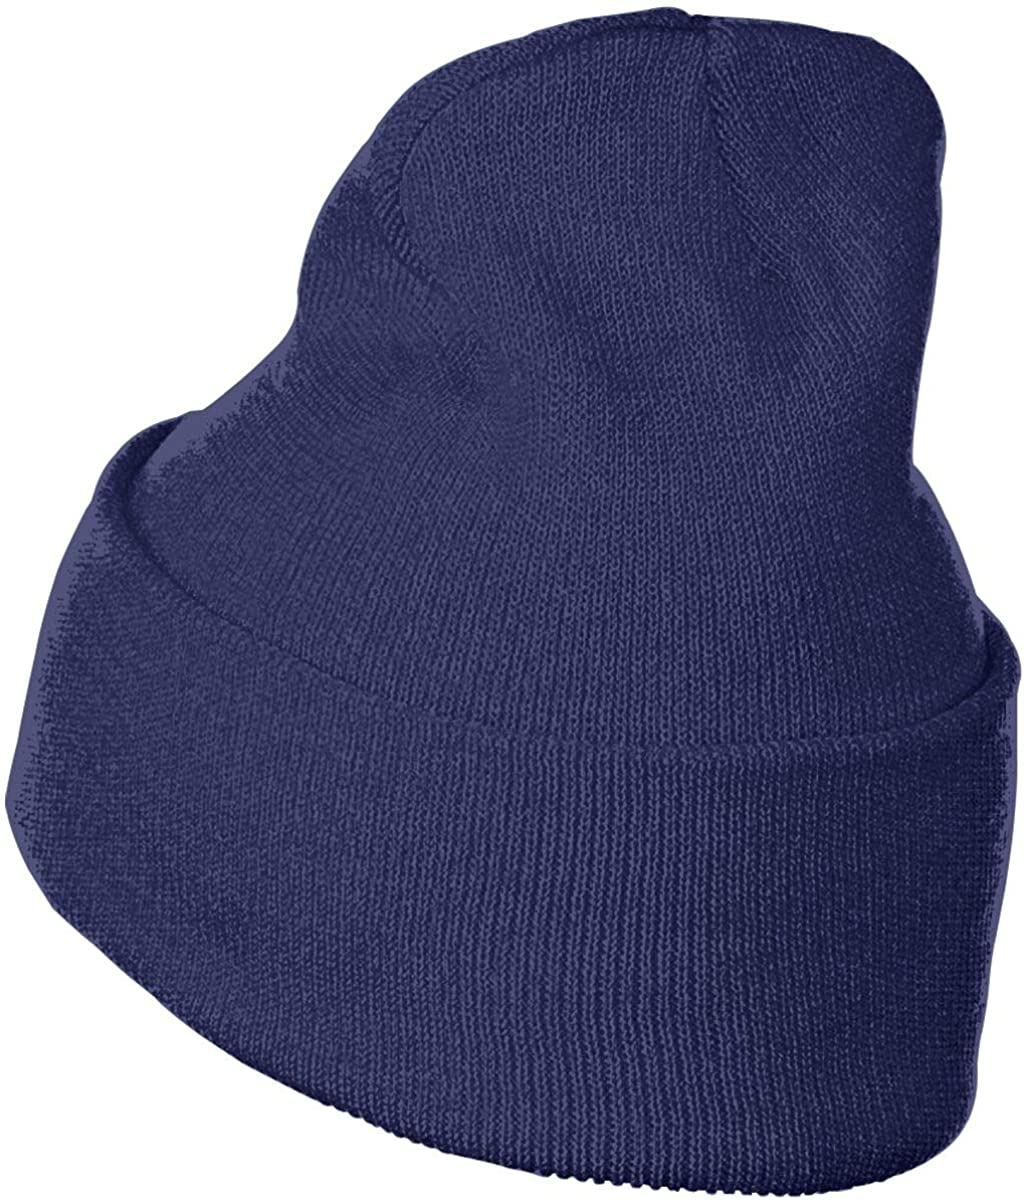 Assbutt Castiel Mens/&Womens Knit Hat Cap Skull Cap Winter Warm Soft Ski Cap Beanie Cap XIAOYANFA Hey